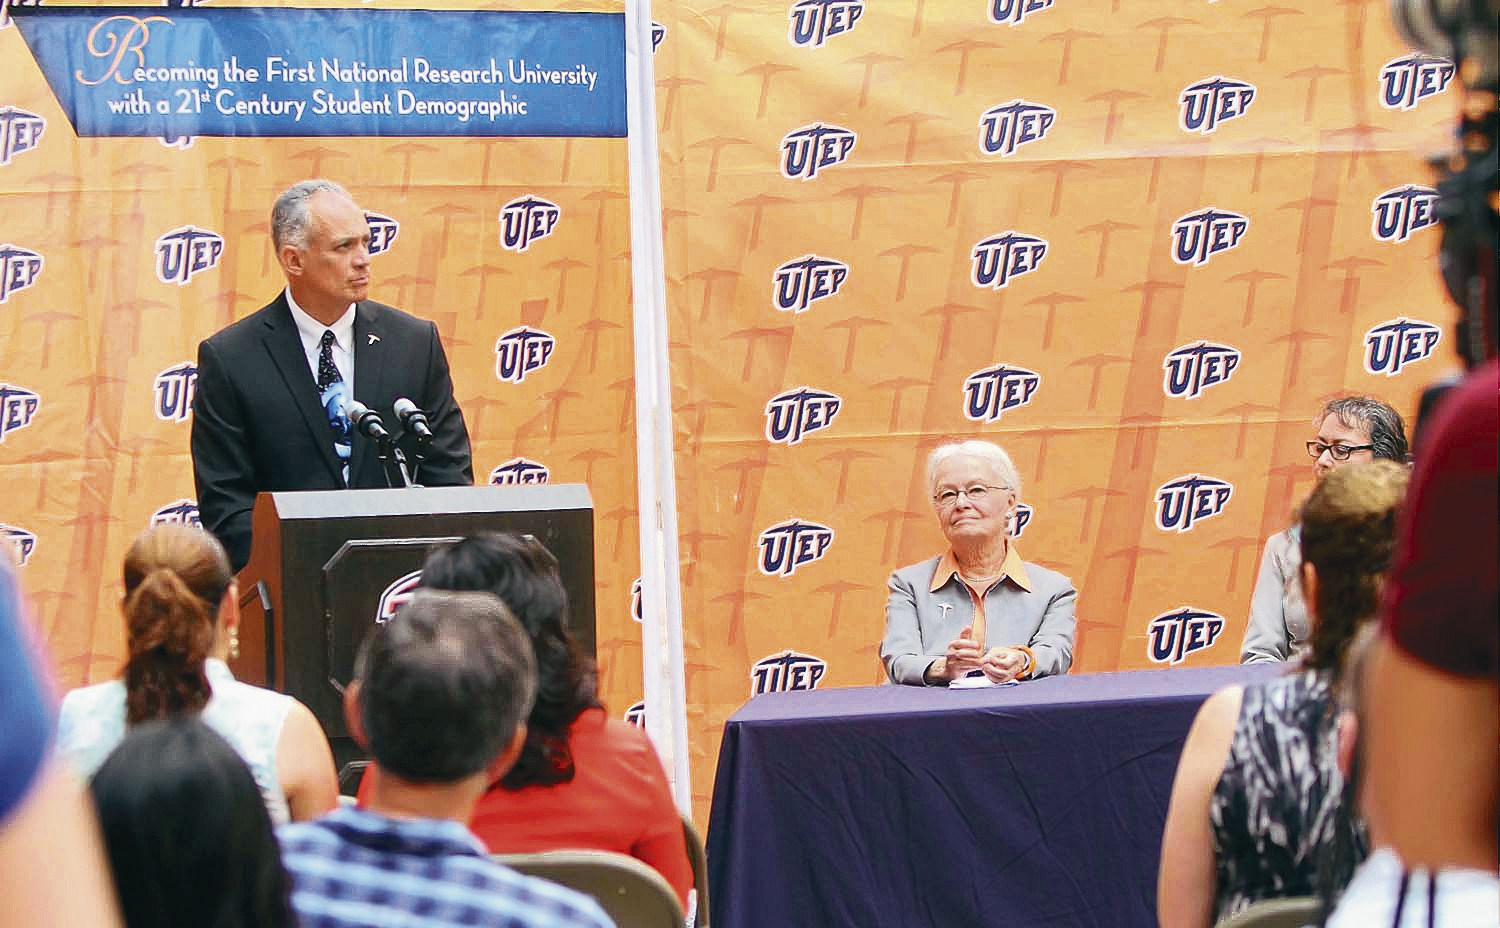 Photo by J.R. Hernandez / UTEP News Service